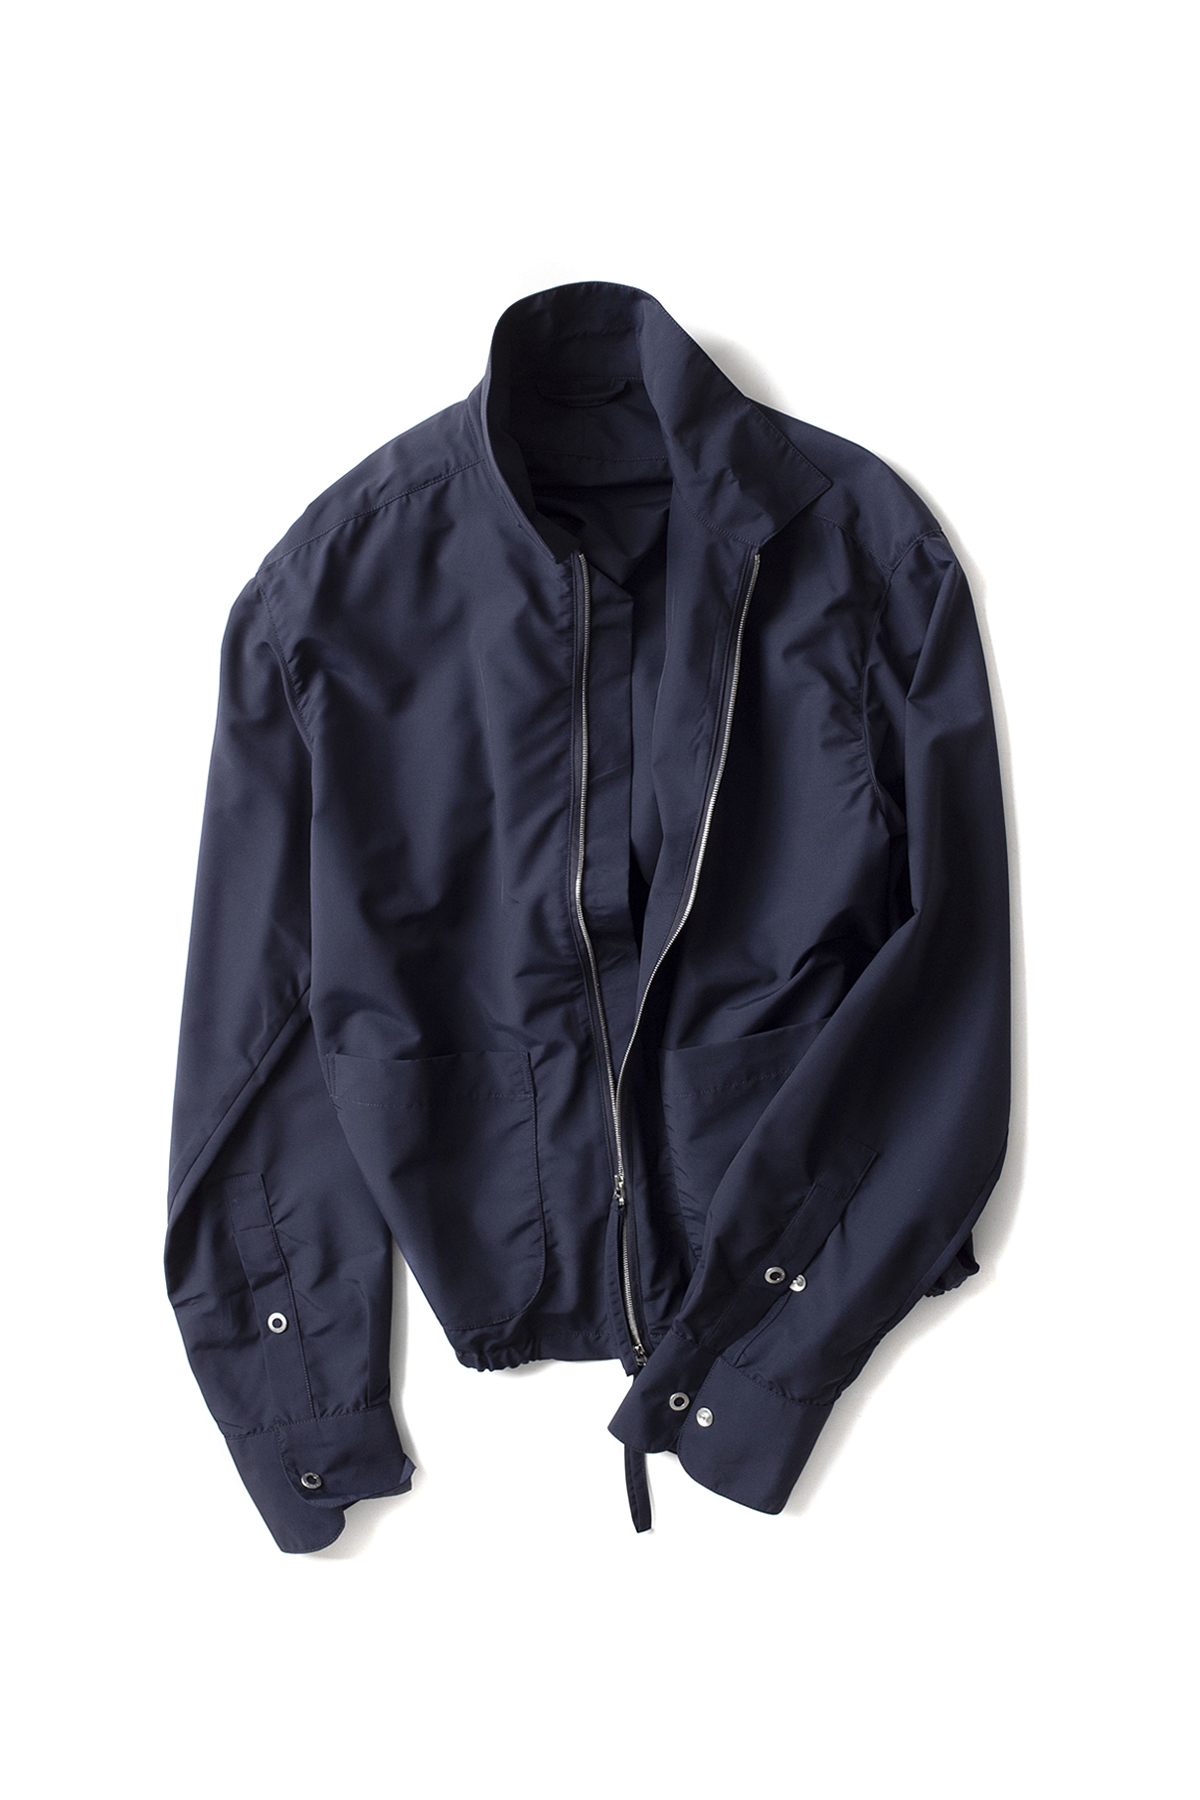 E. Tautz : Core Torquay Jacket (Navy)